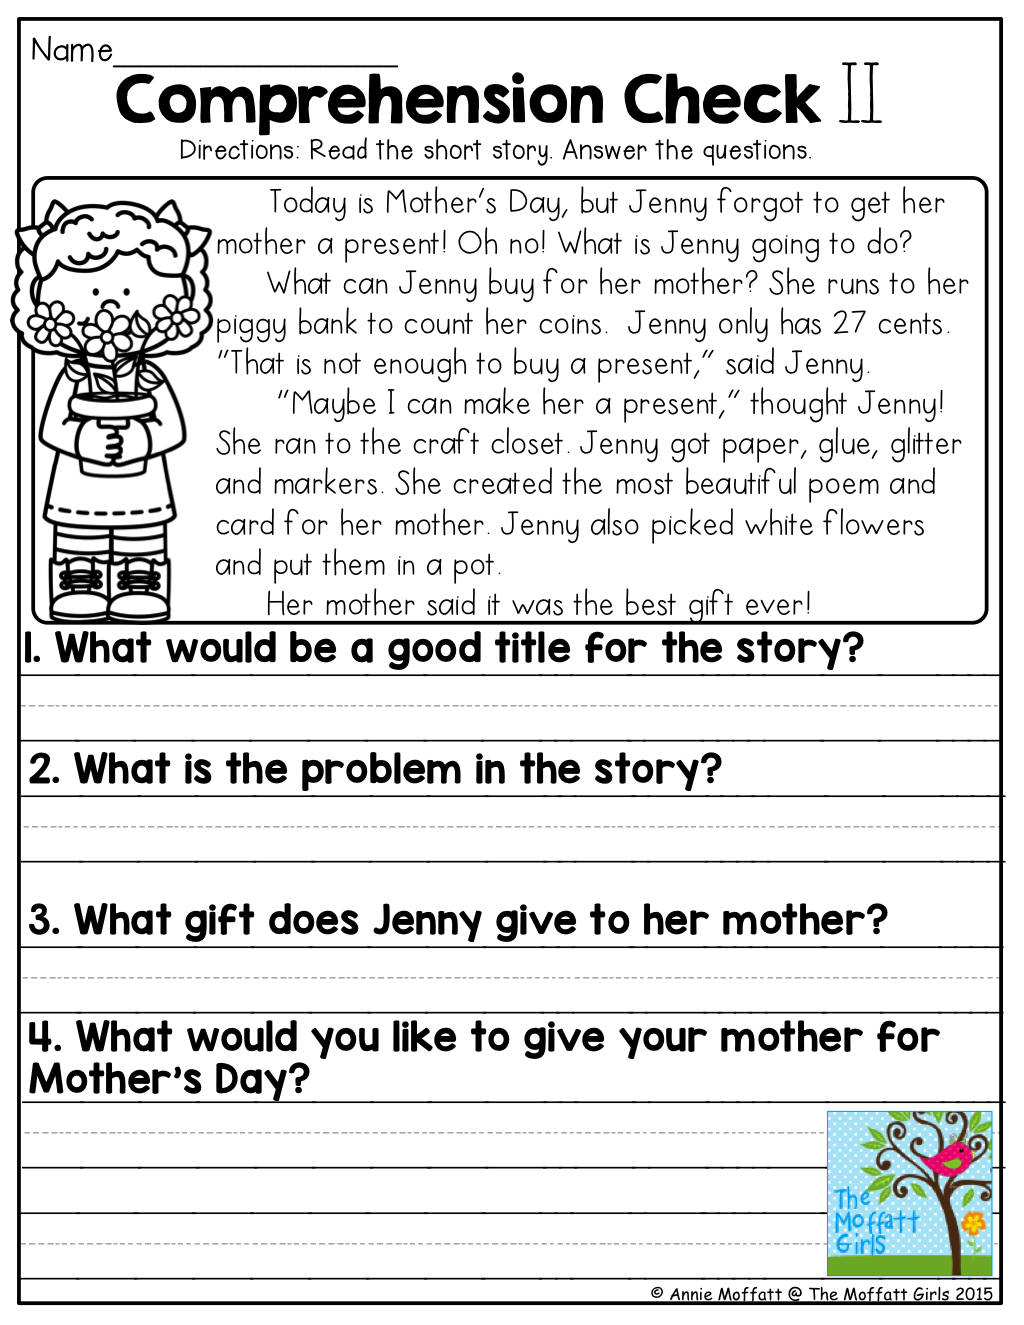 Worksheet Short Stories For Kids Grade 2 free language arts lesson reading comprehension and may no prep math literacy 1st grade storiescomprehension questionsreading comprehensionquestions tonsshort